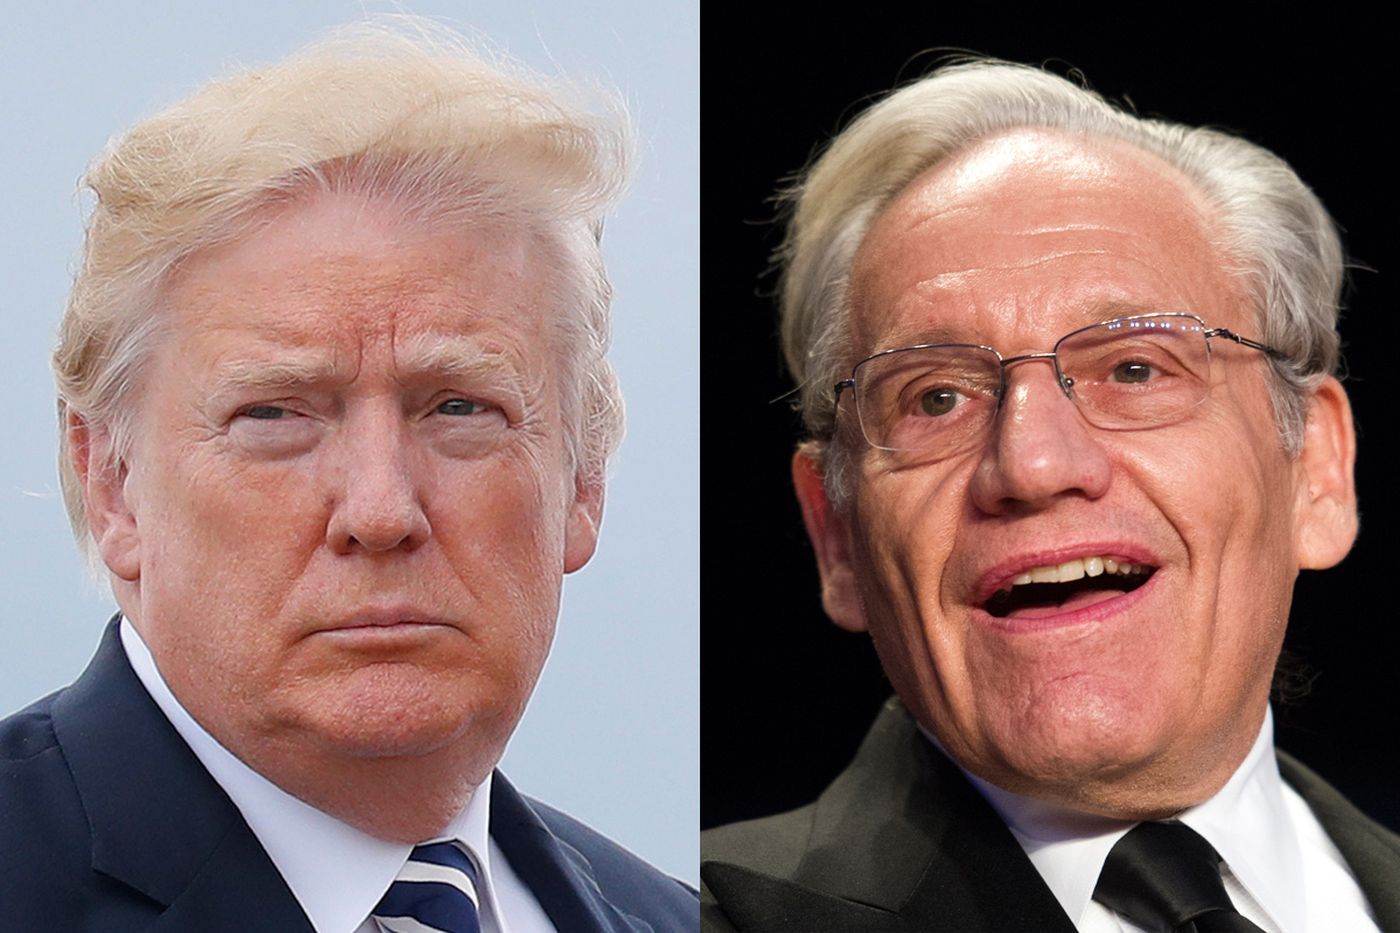 Newt Gingrich Defends Trump From Woodward: Look, FDR 'Routinely Lied to Everybody'